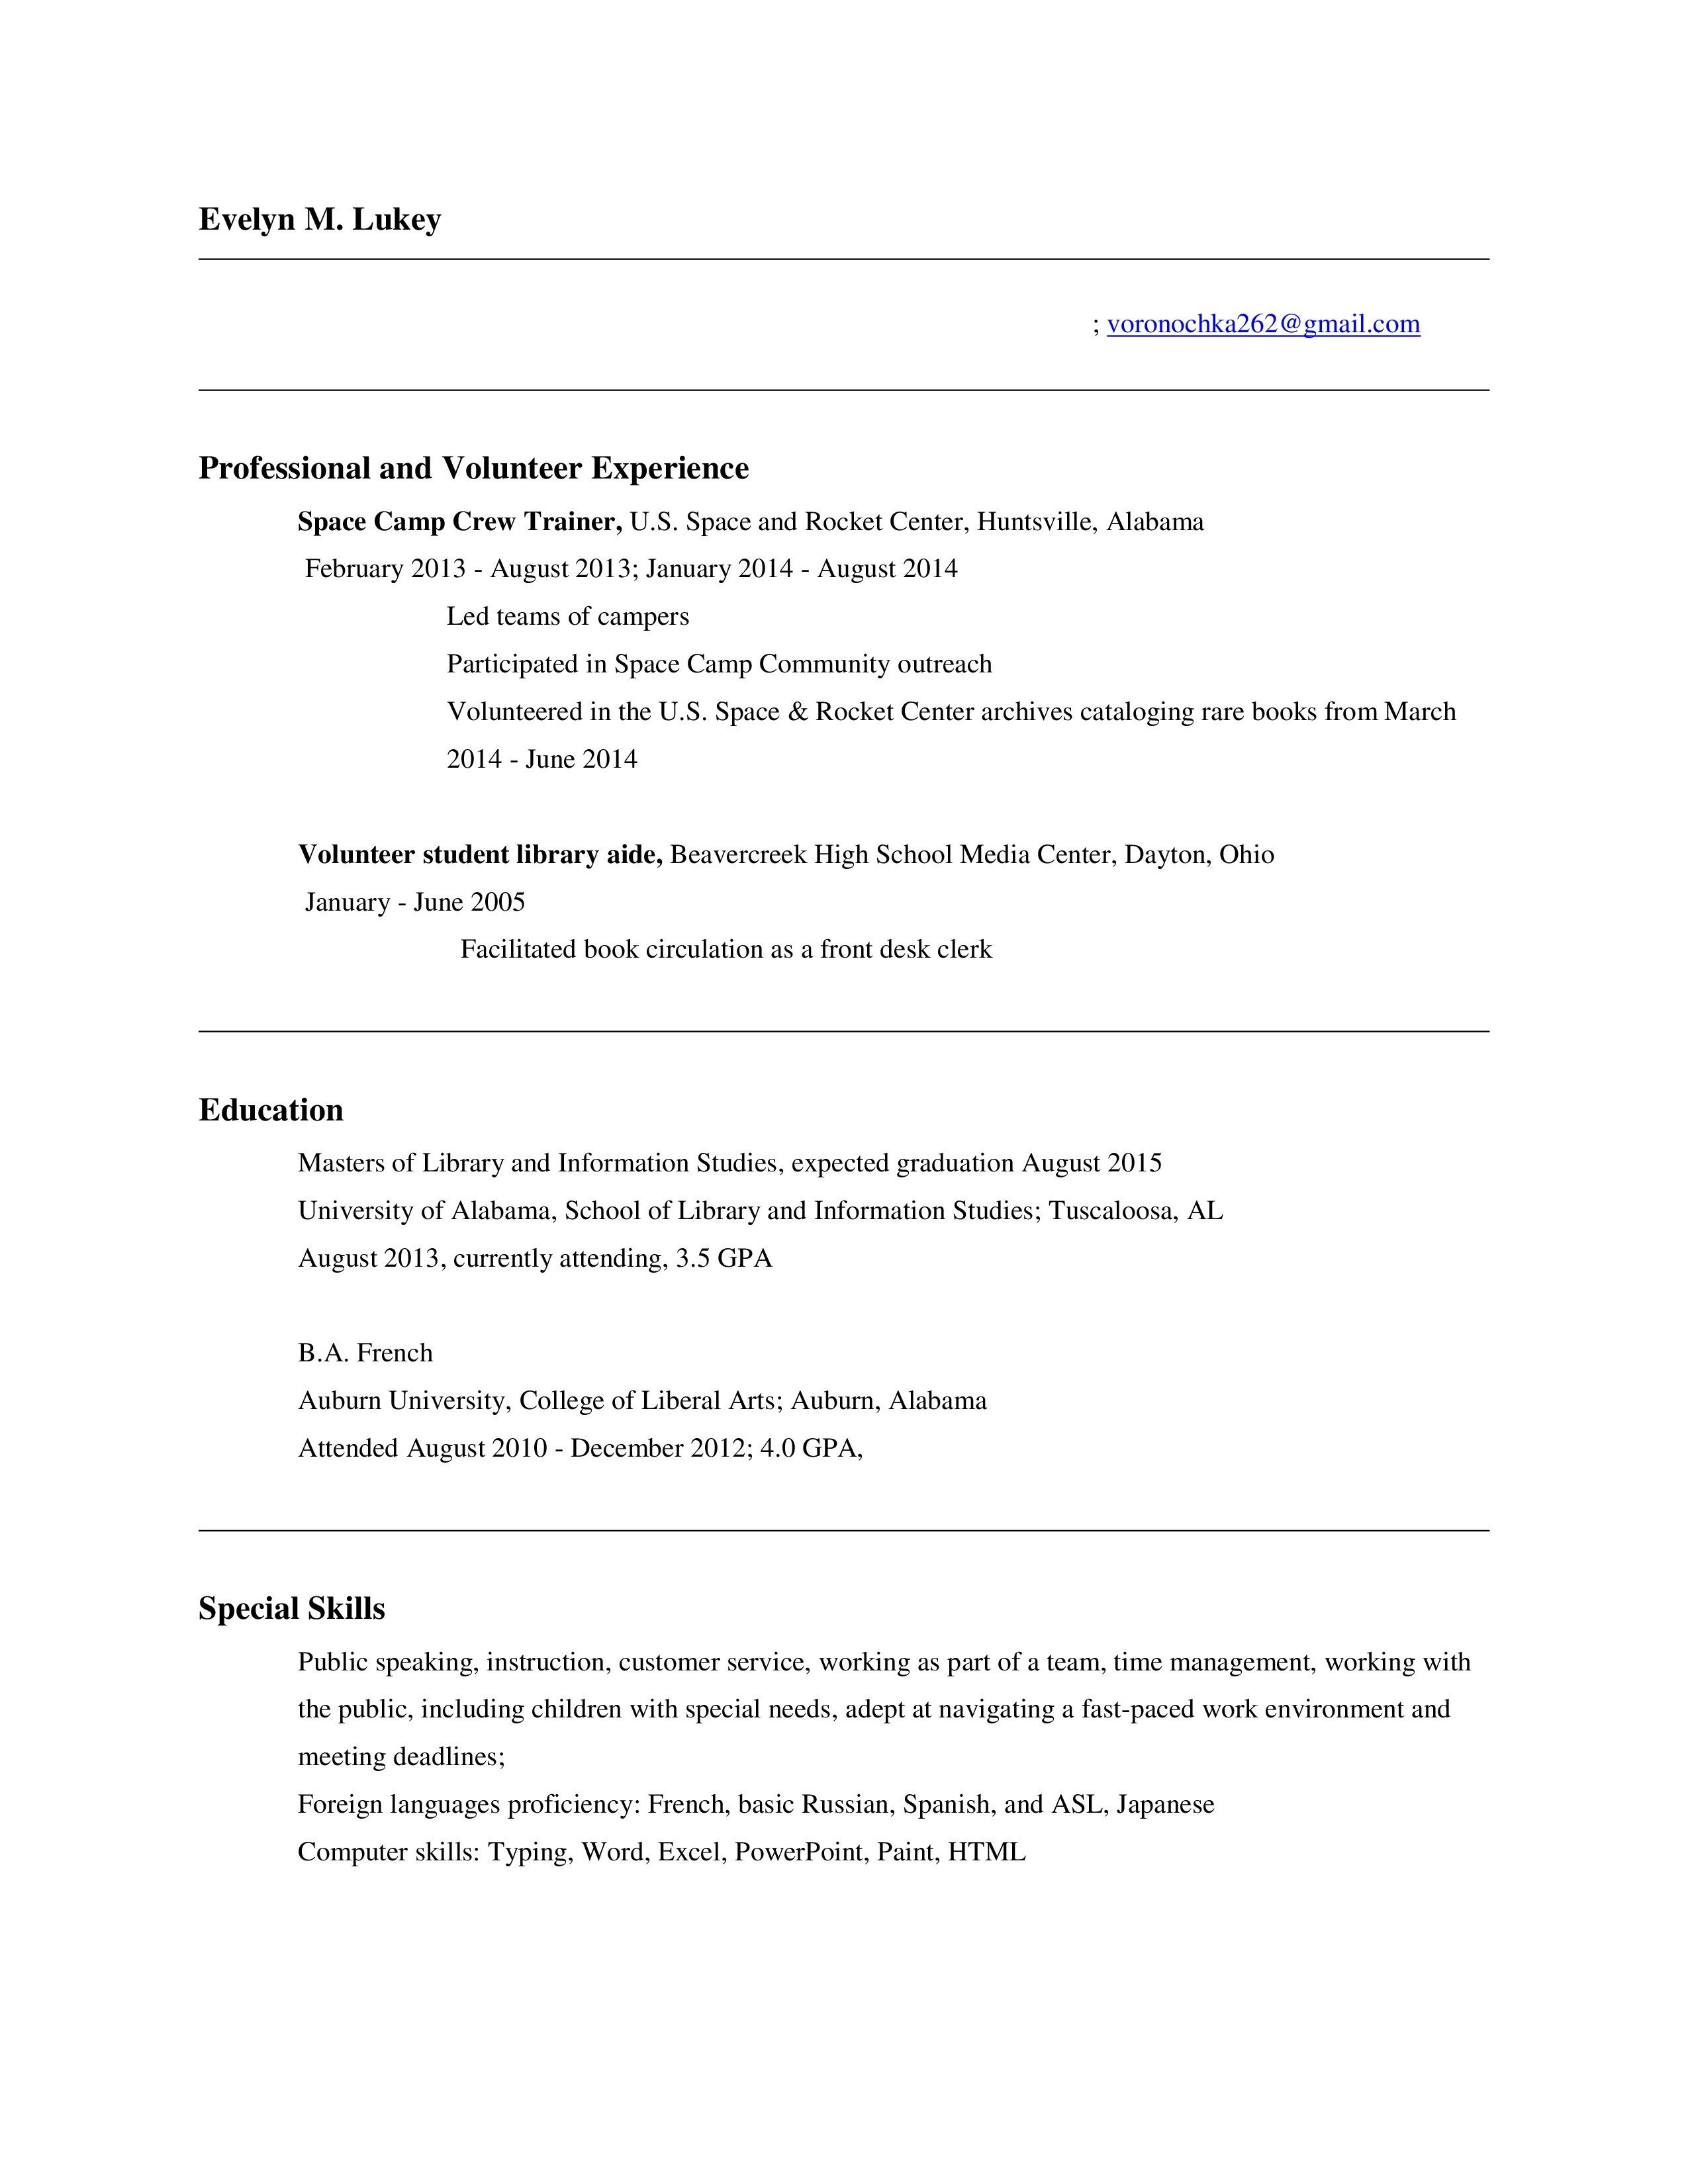 Pin By Dora On Resume Cover Letter Examples In 2020 Resume